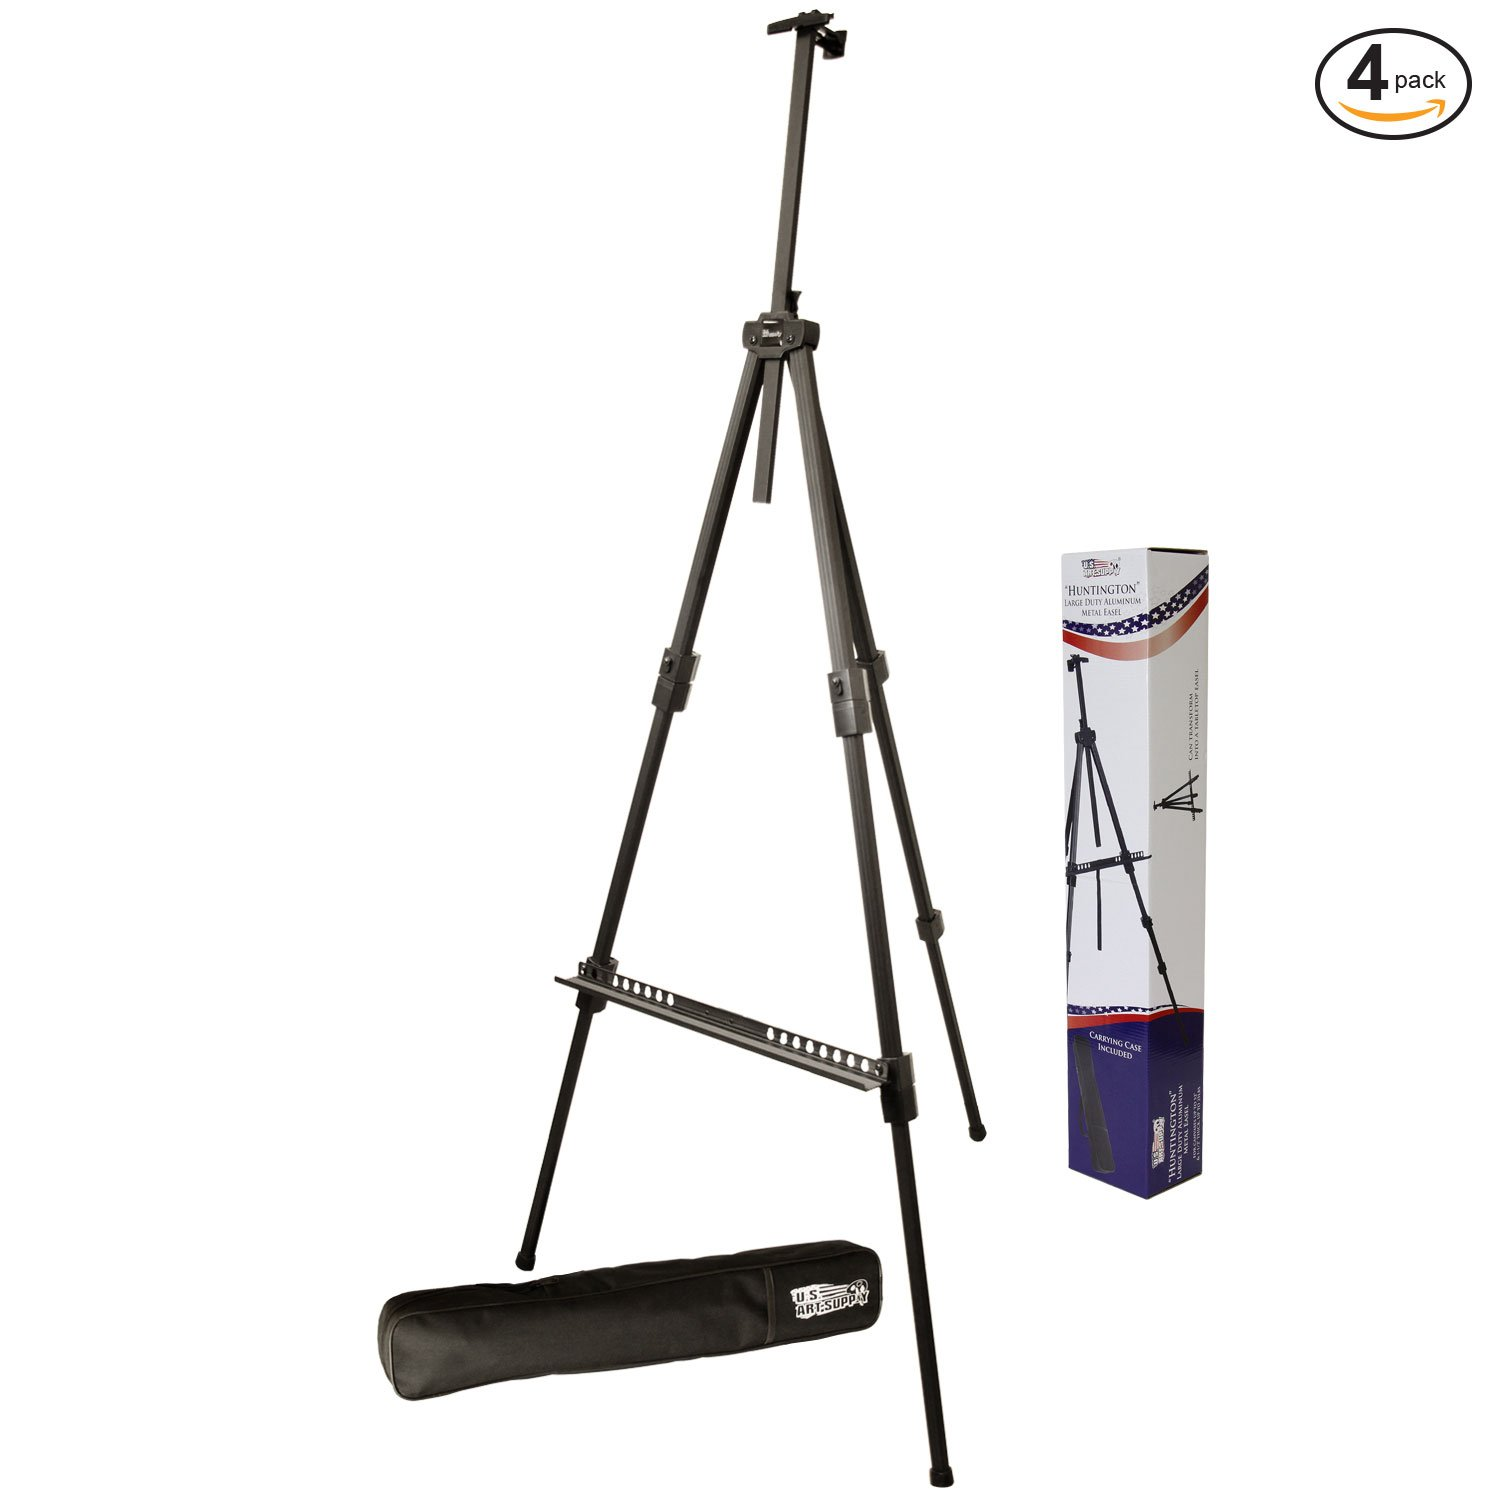 US Art Supply Huntington (Large) 72 Inches Tall Aluminum Tripod Field and Display Easel-Extra Sturdy Premium Metal Construction with Carry Bag (4-Easels)